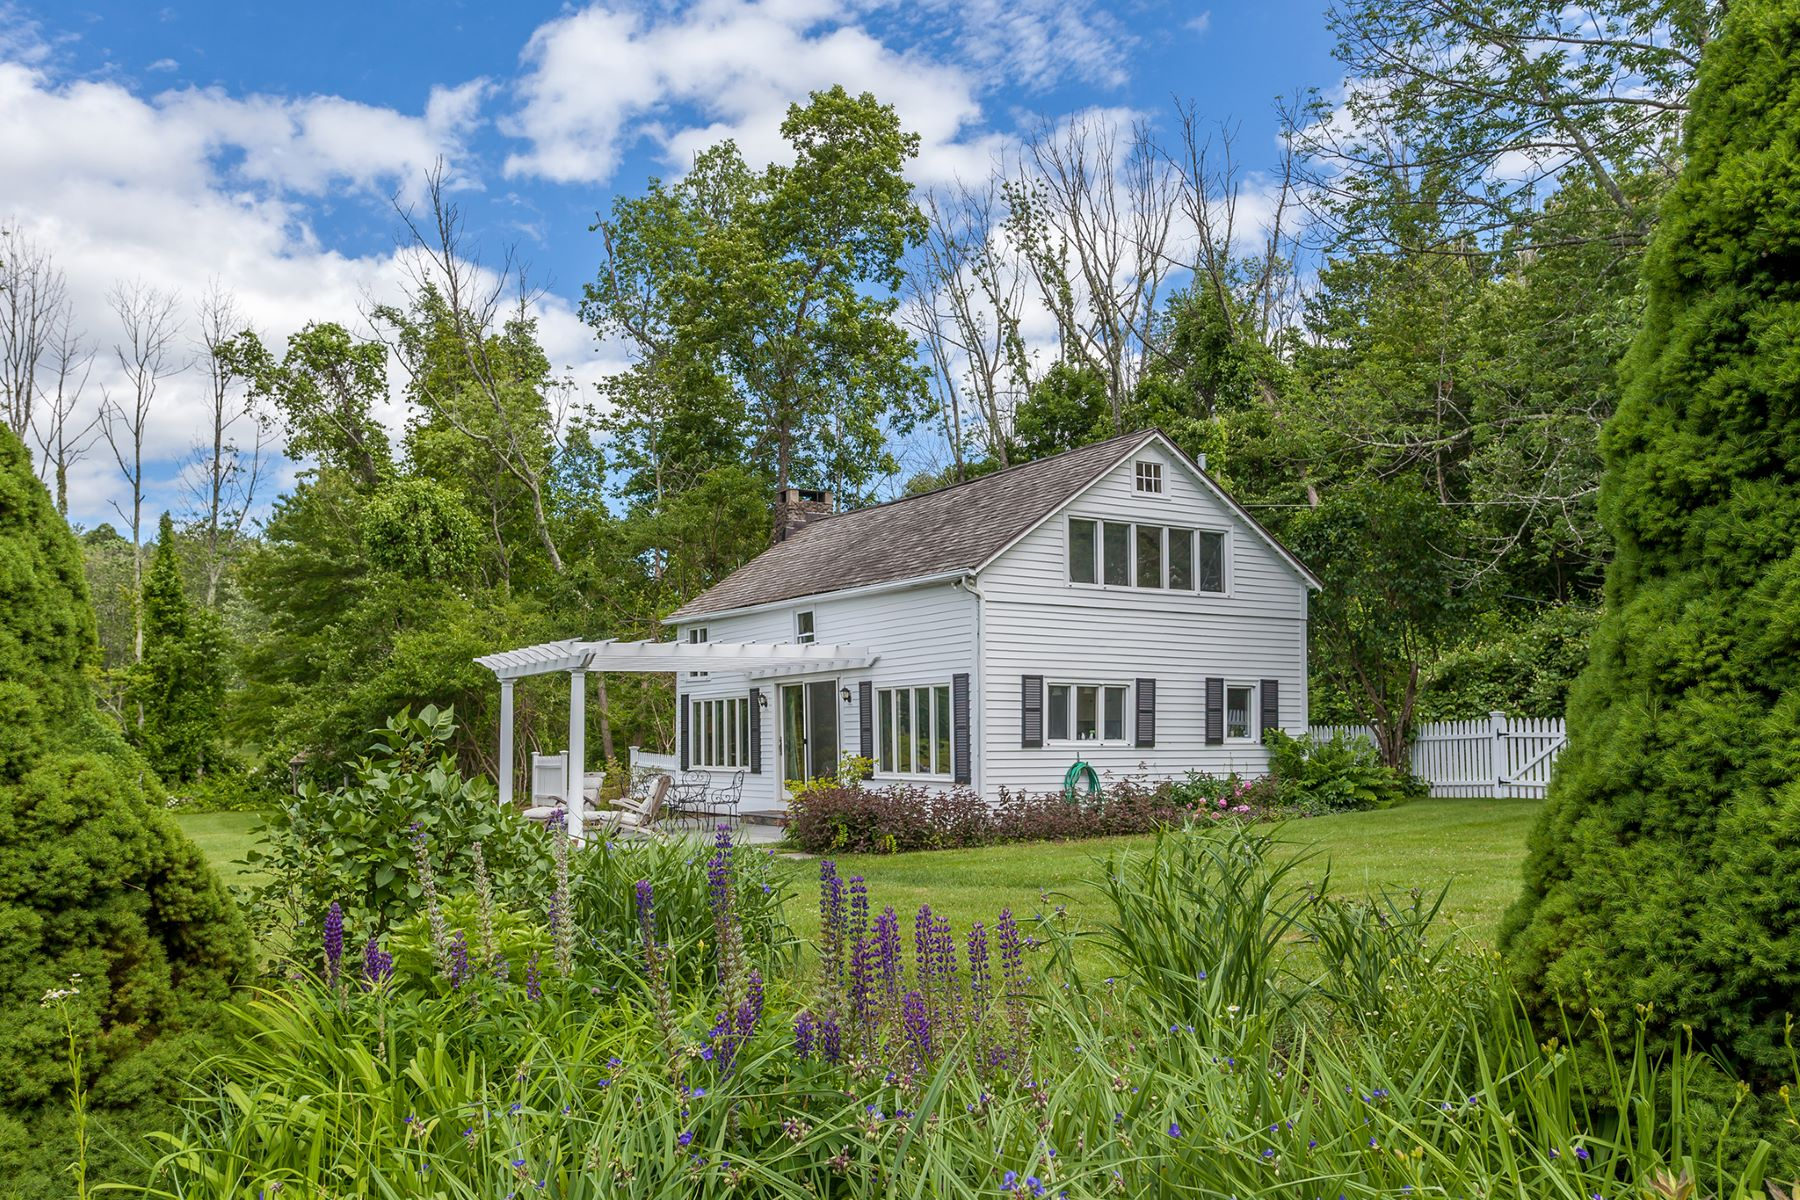 Single Family Home for Sale at Matthau Cottages 130 A Tophet Rd Roxbury, Connecticut, 06783 United States